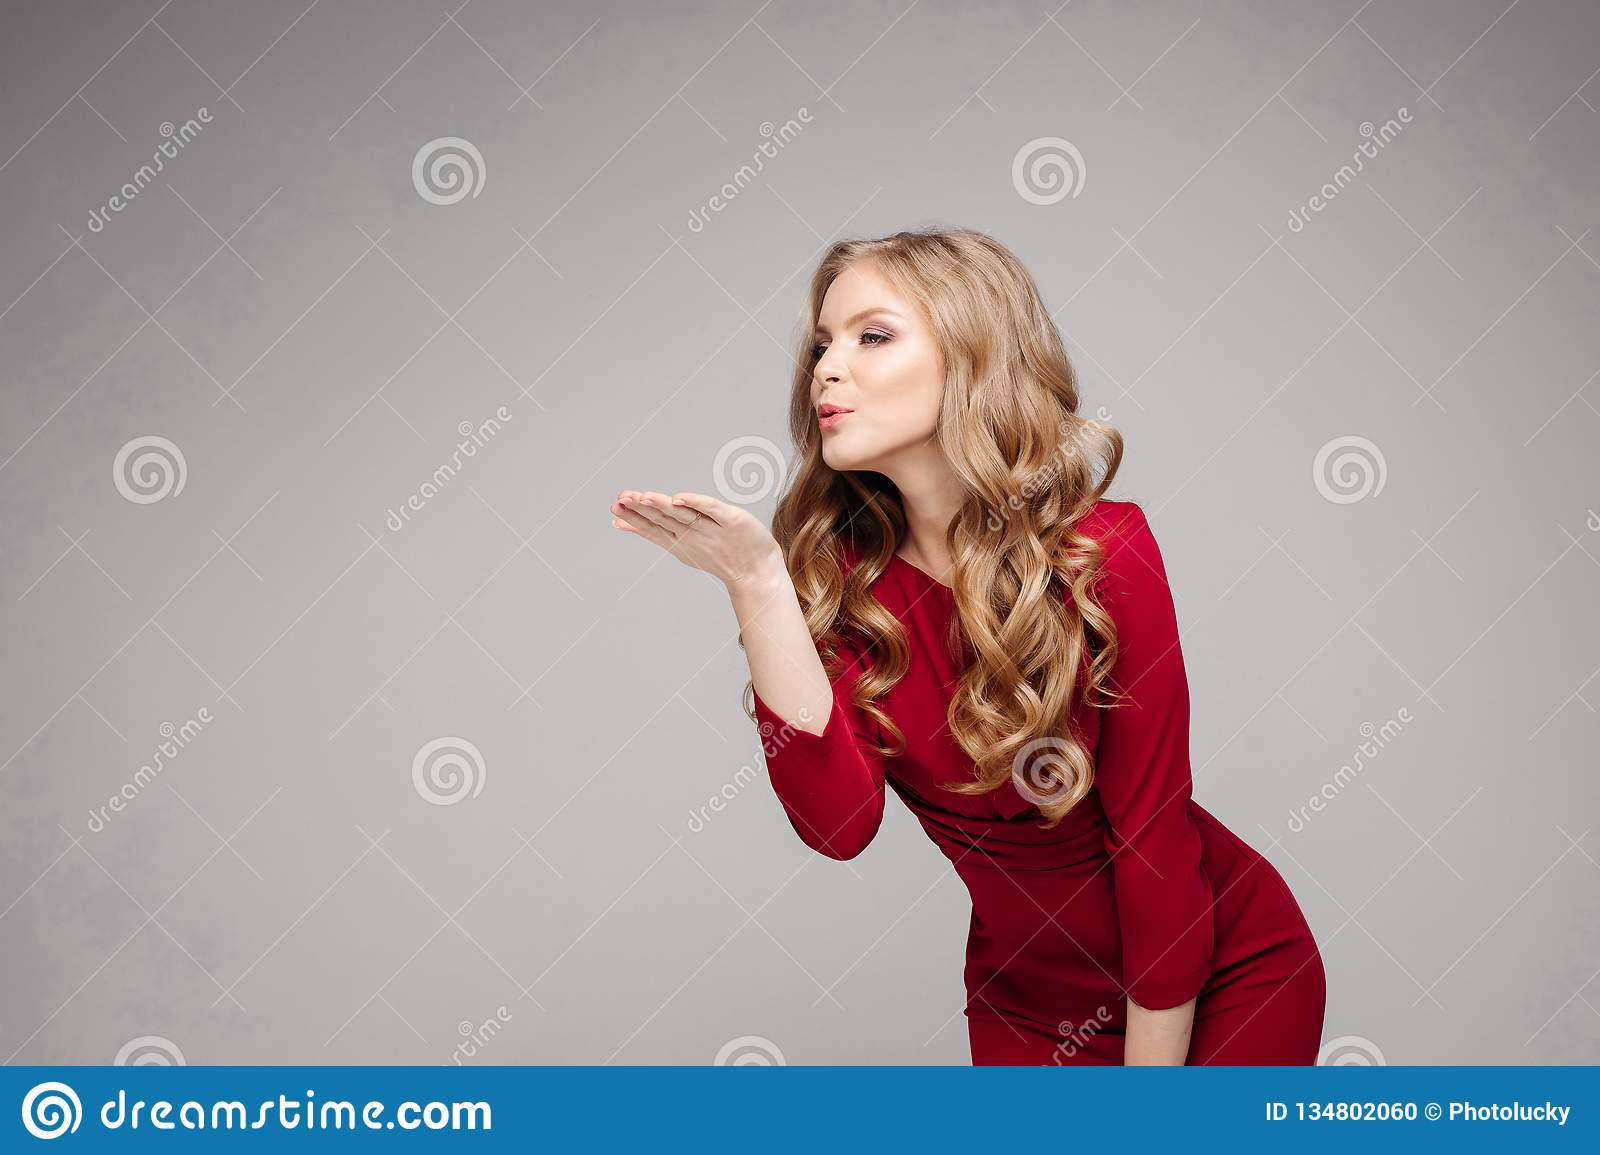 79ab8b507fa Studio portrait of attractive woman with long wavy hair in tail wearing  mini red dress and black high heels over white background. Isolate.